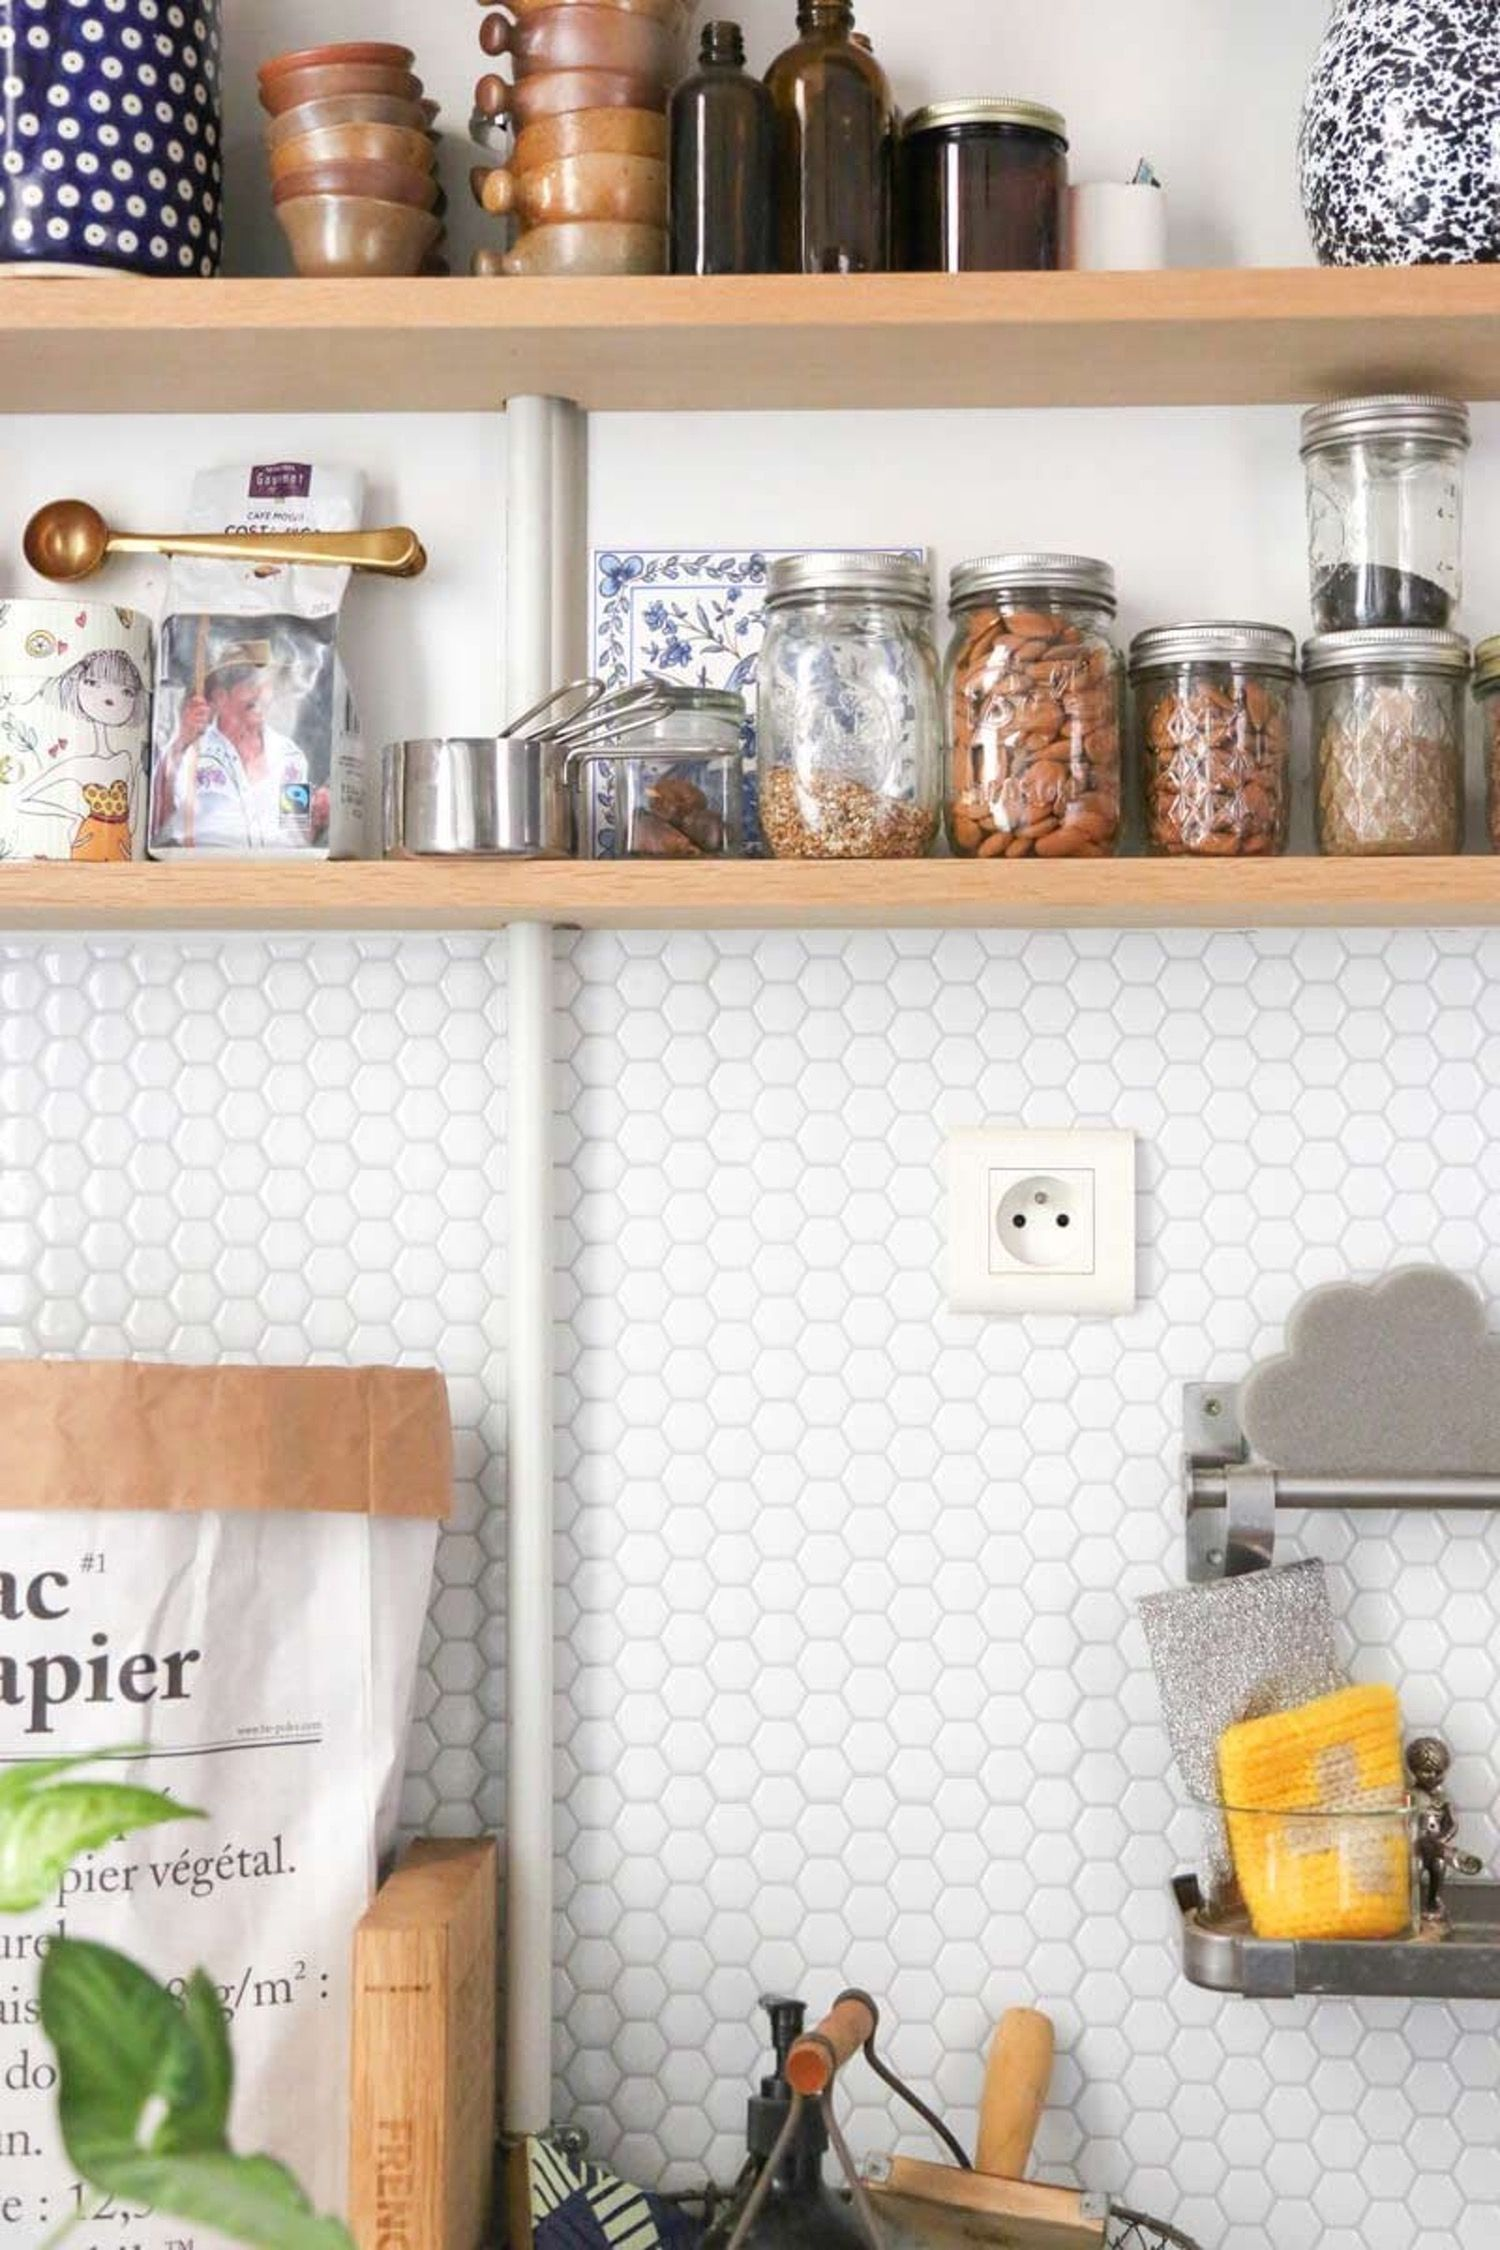 Peel and stick tile backsplash ideas backsplash ideas subway removable peel and stick subway tile the kind you can install over your existing tile in an afternoon without any special tools or tricks dailygadgetfo Choice Image